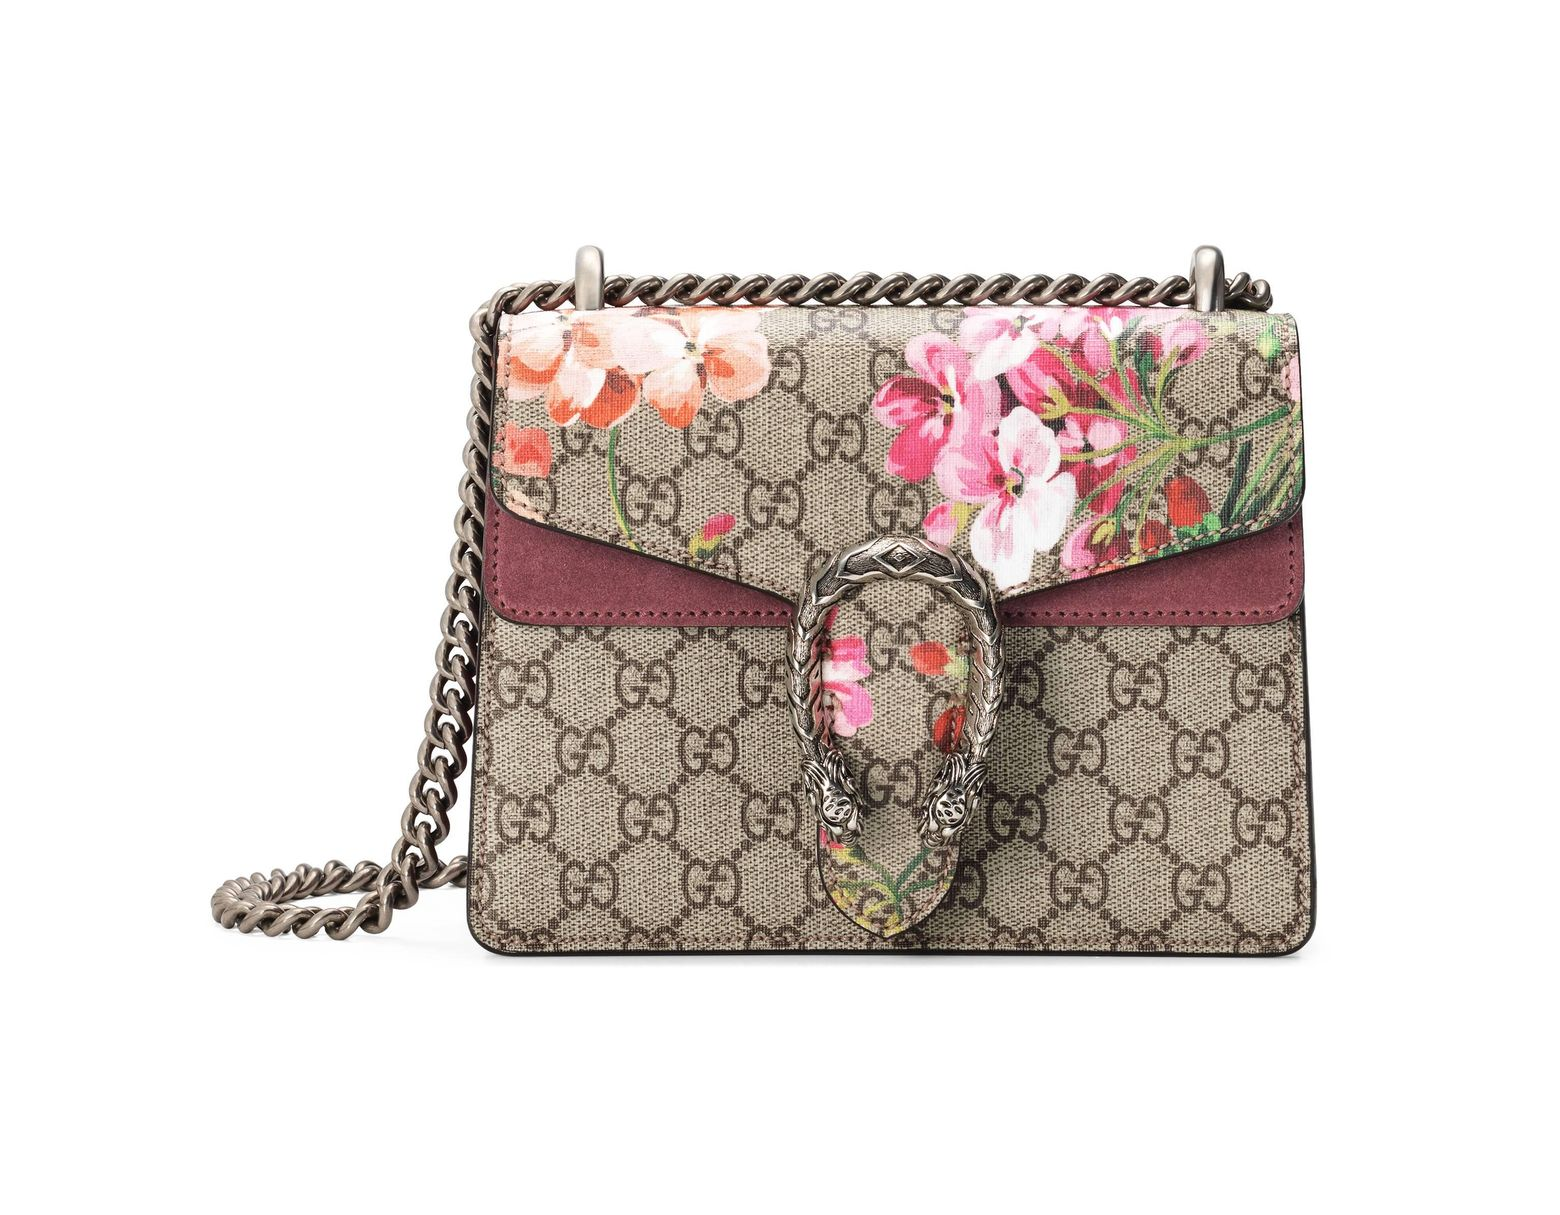 1caa023ba Gucci Dionysus Gg Blooms Mini Bag in Natural - Lyst